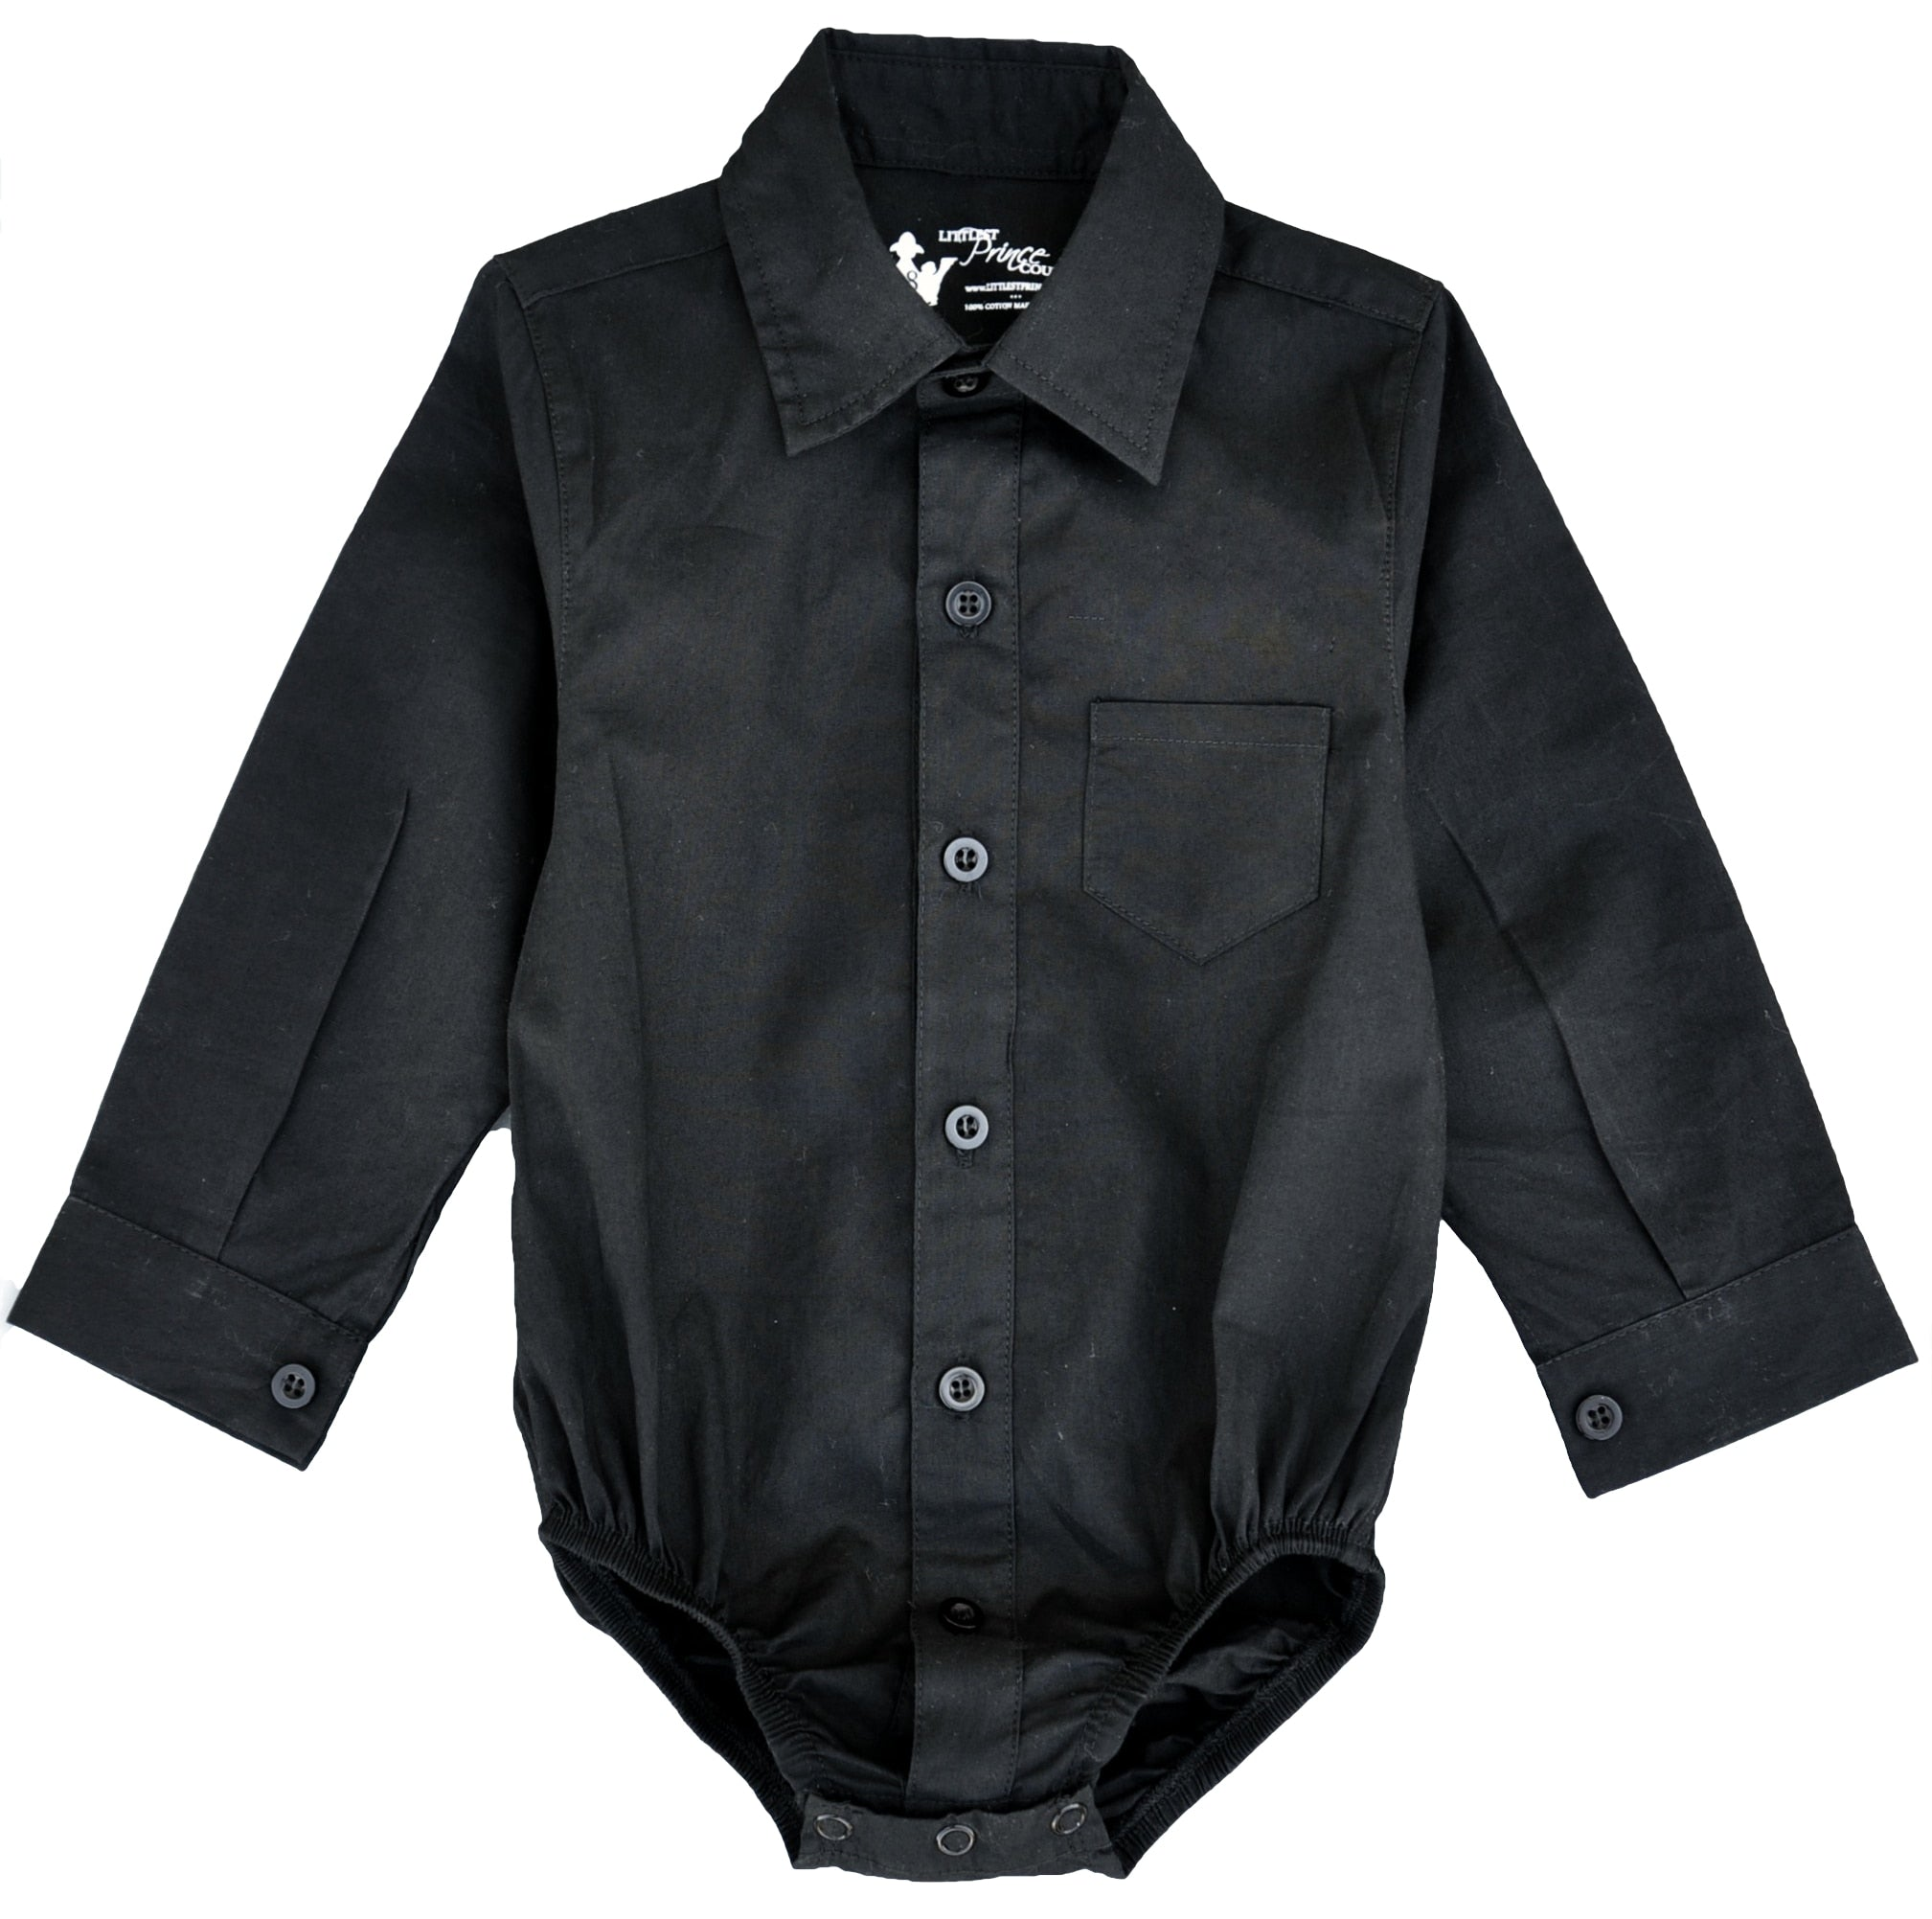 black-dress-shirt-onesie.jpg